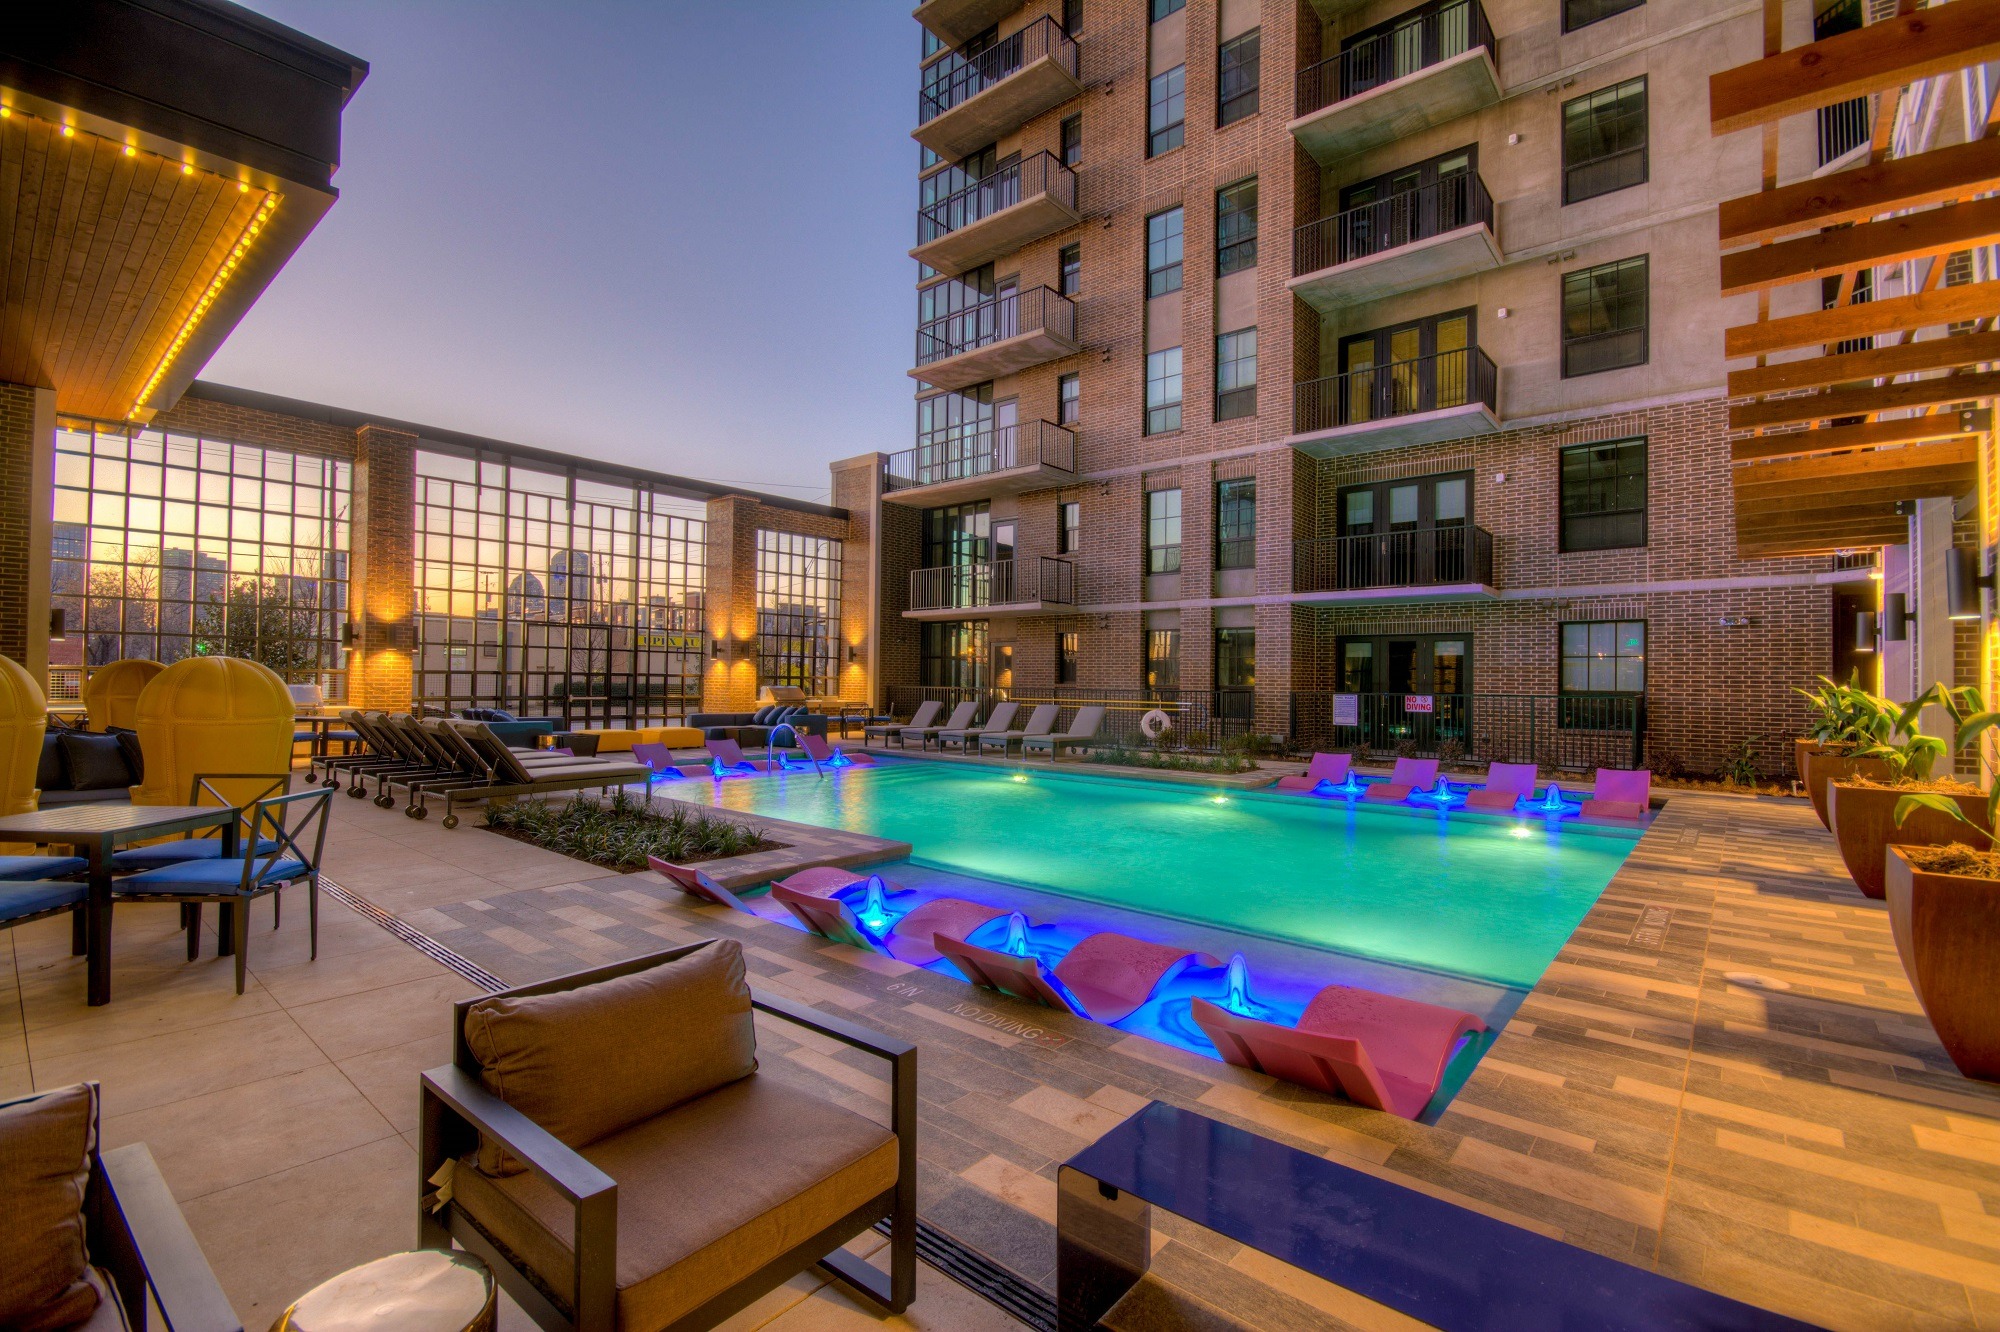 Garage Apartment For Rent In Dallas Deep Ellum Luxury Apartments The Case Building Downtown Dallas